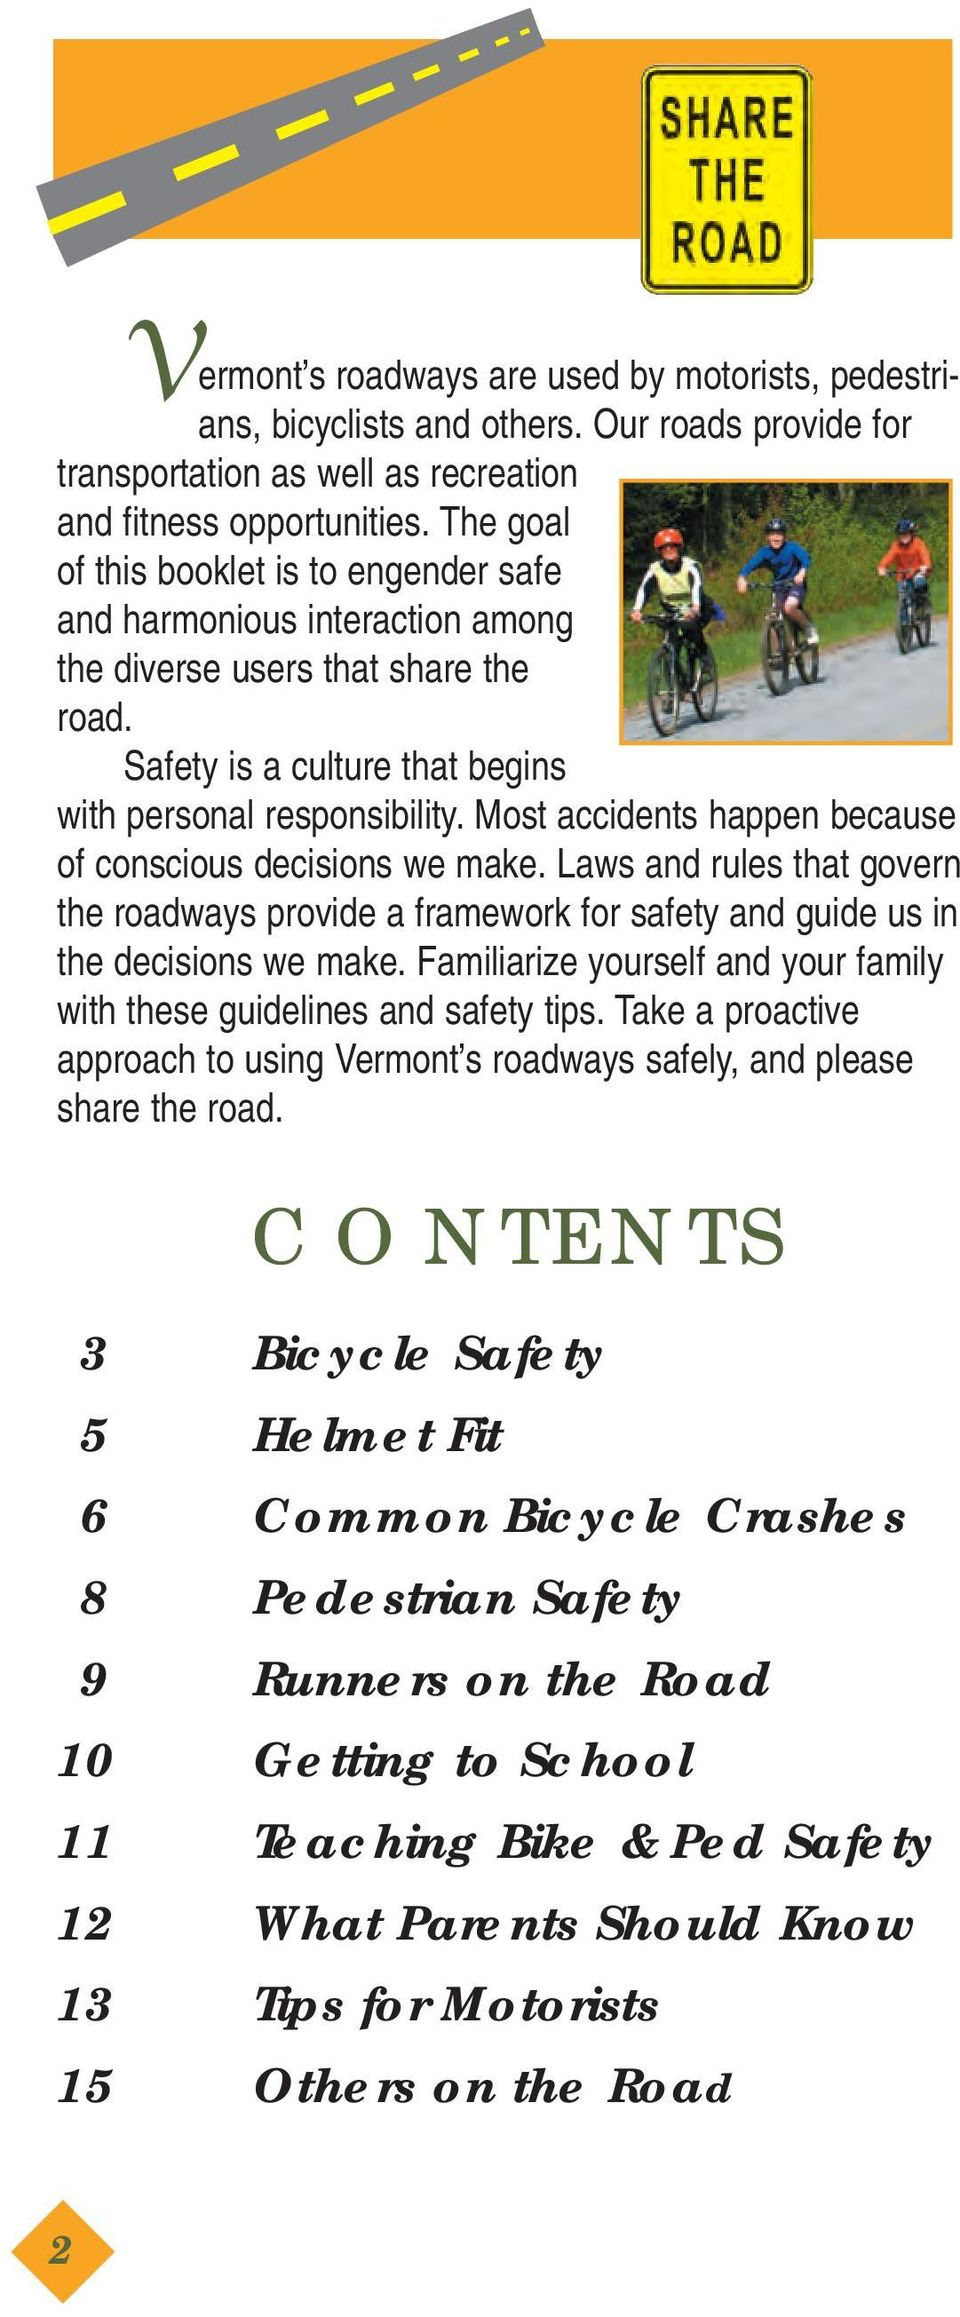 Most accidents happen because of conscious decisions we make. Laws and rules that govern the roadways provide a framework for safety and guide us in the decisions we make.